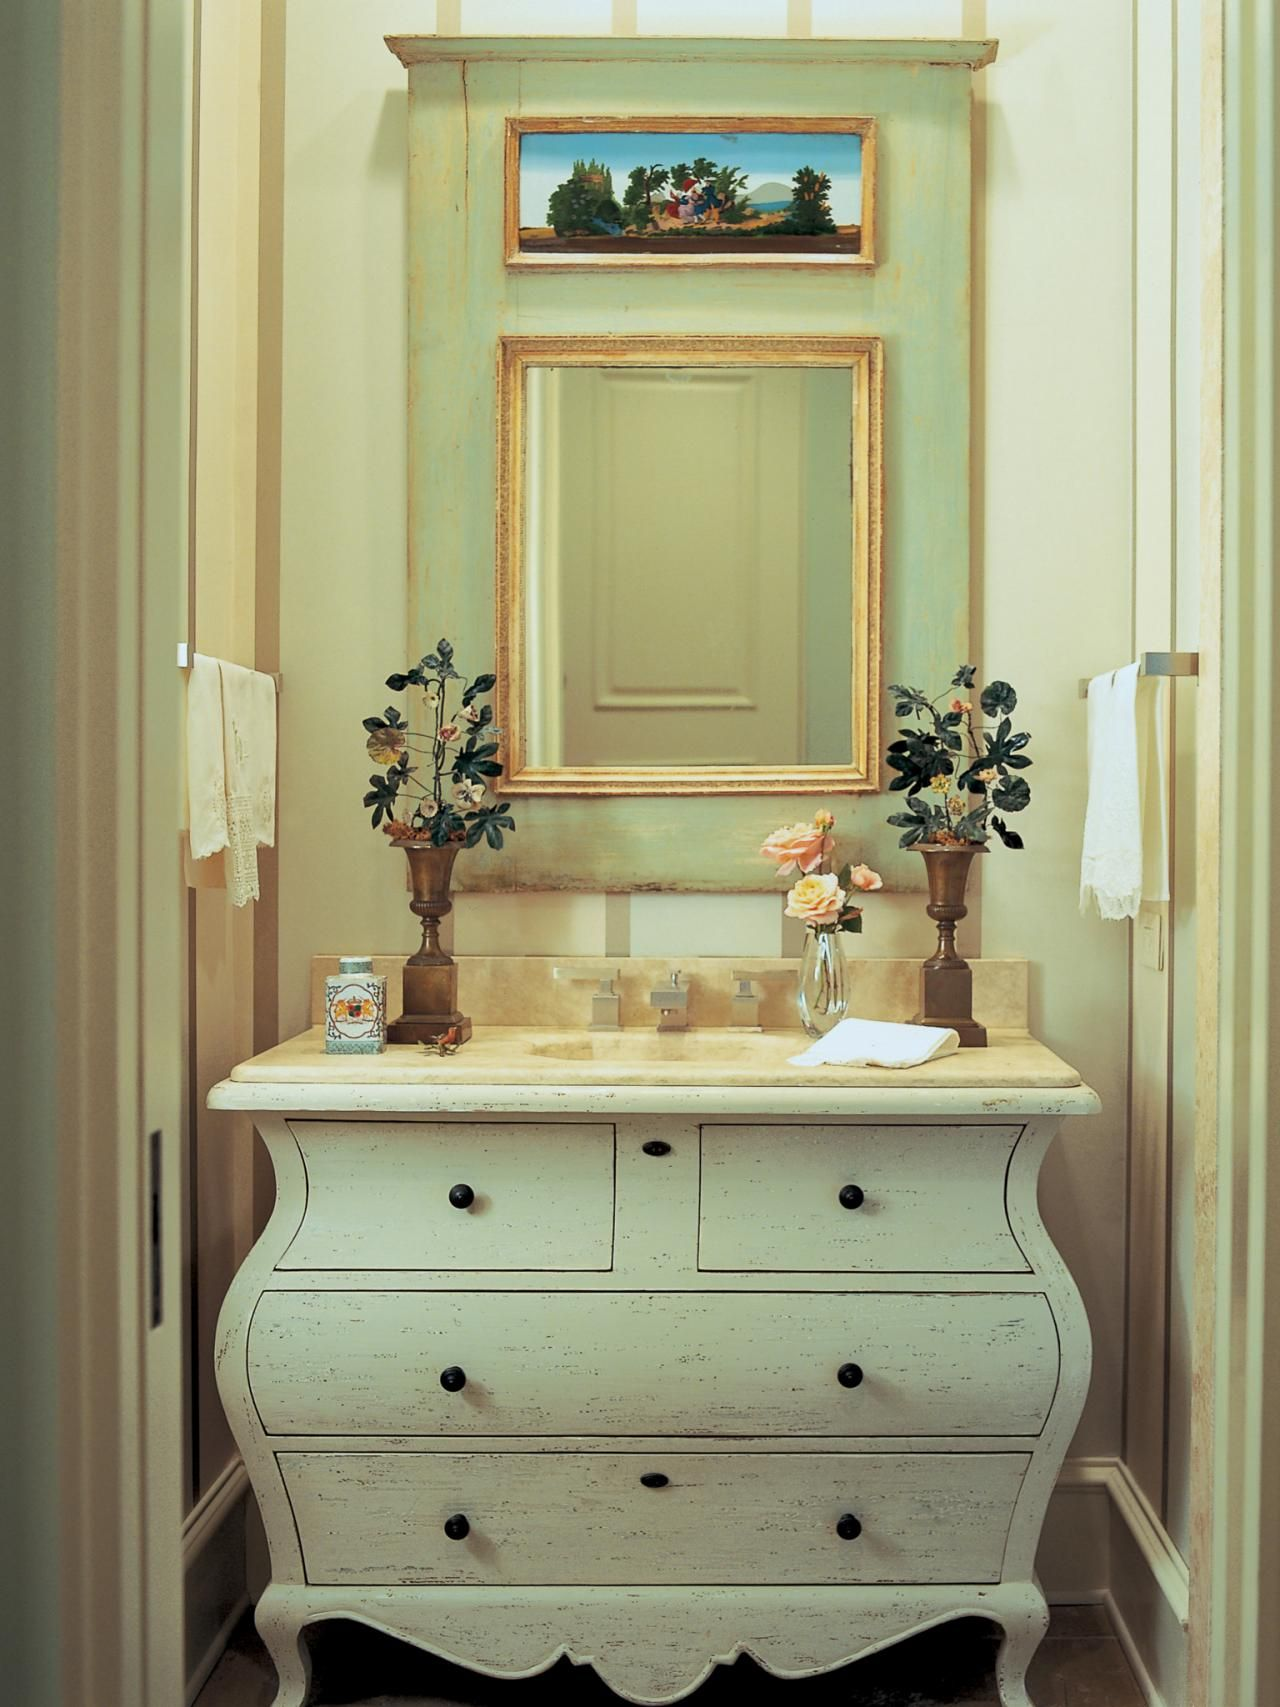 A Swedish style dresser is refurbished as a vanity with a